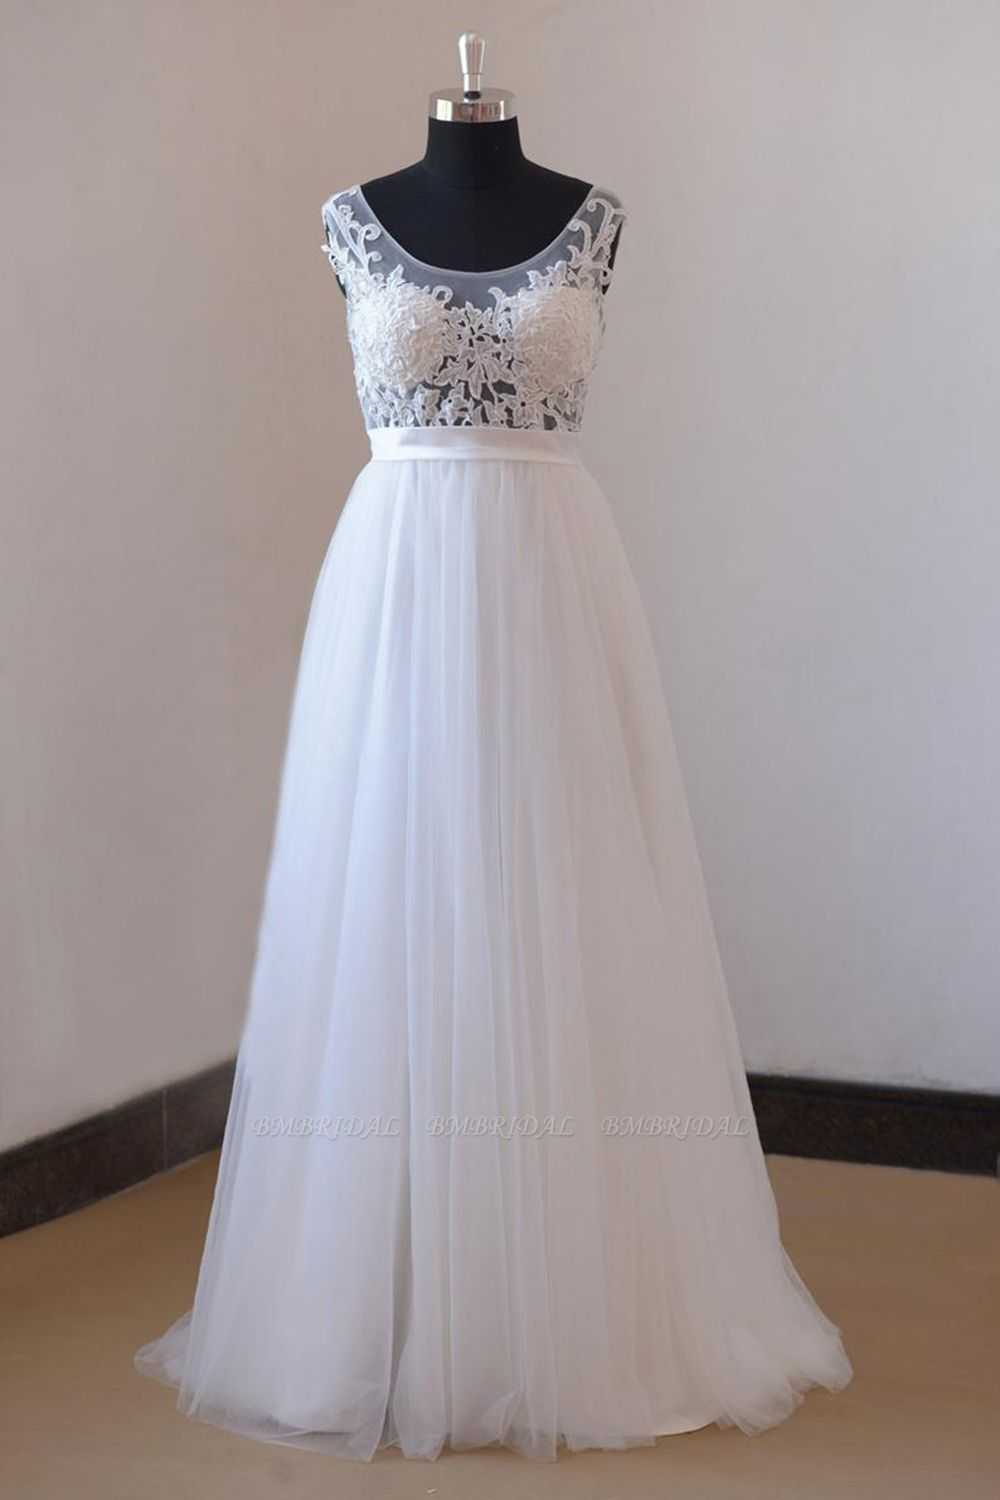 BMbridal Gorgeous Jewel Appliques Sleeveless Wedding Dress Tulle Ruffles White Bridal Gowns On Sale